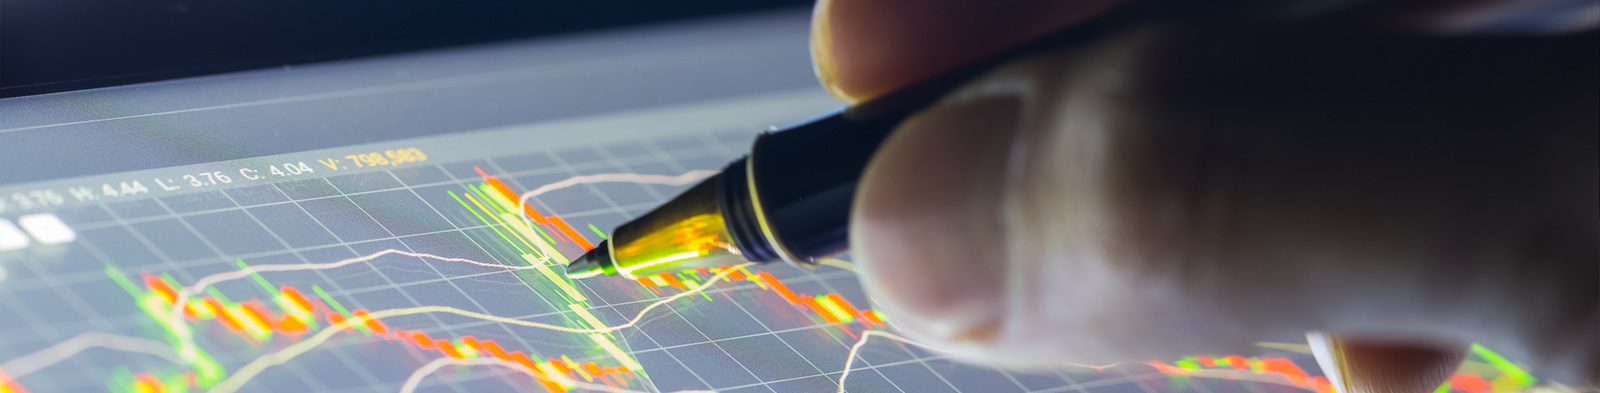 Financial analysis graphs on an electronic tablet